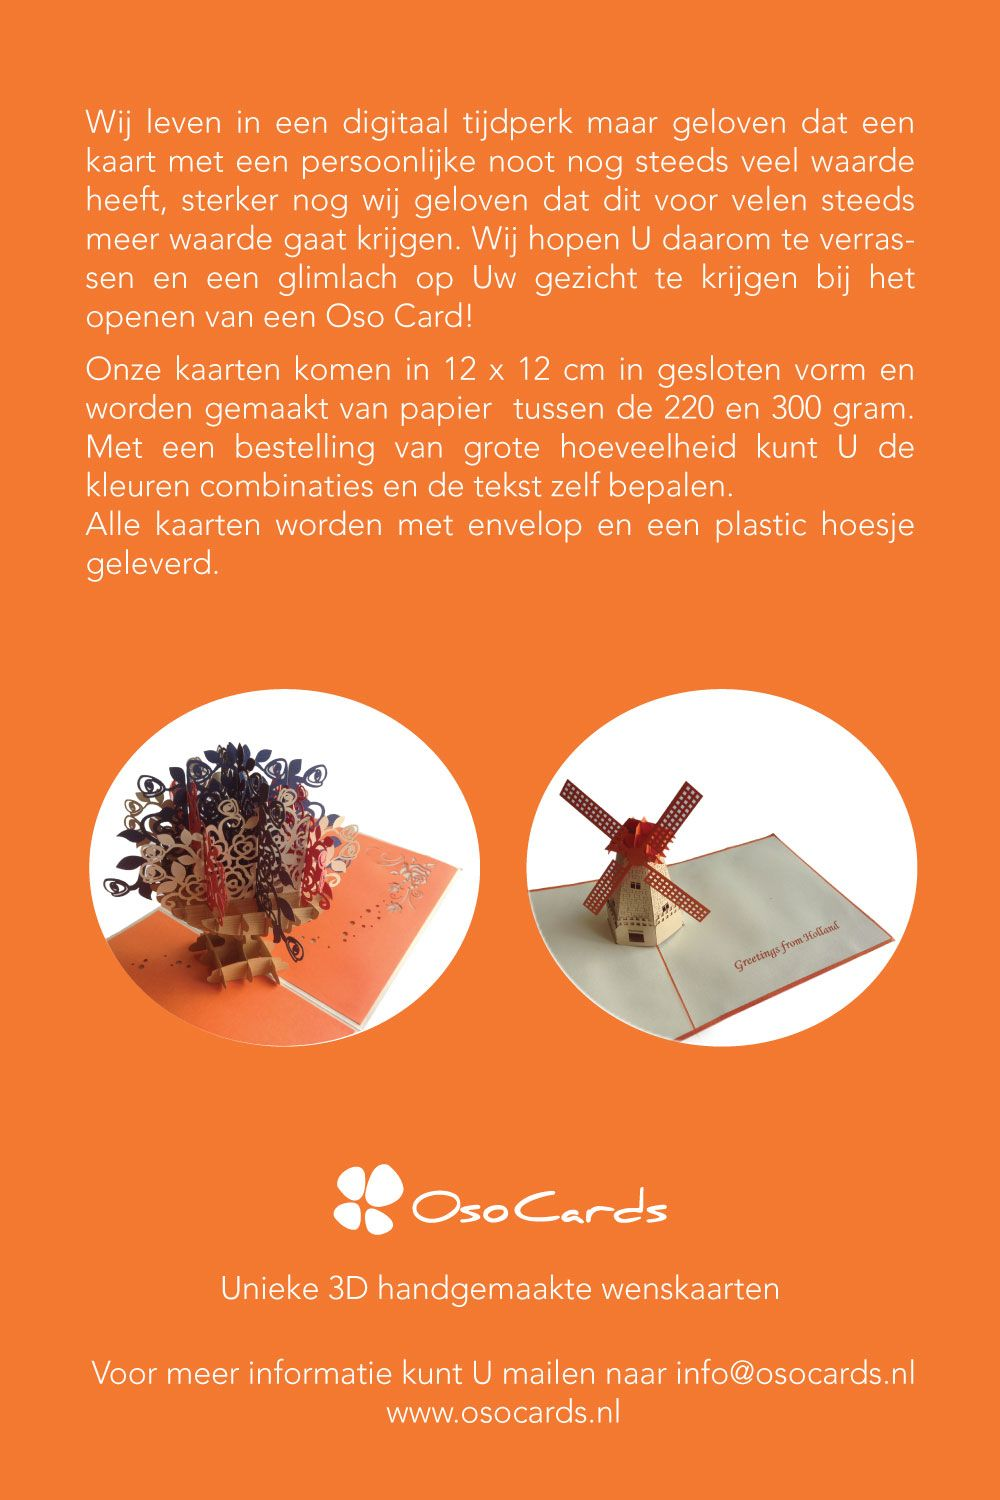 Oso cards info in dutch 2 3d pop up greeting cards links oso cards info in dutch 2 m4hsunfo